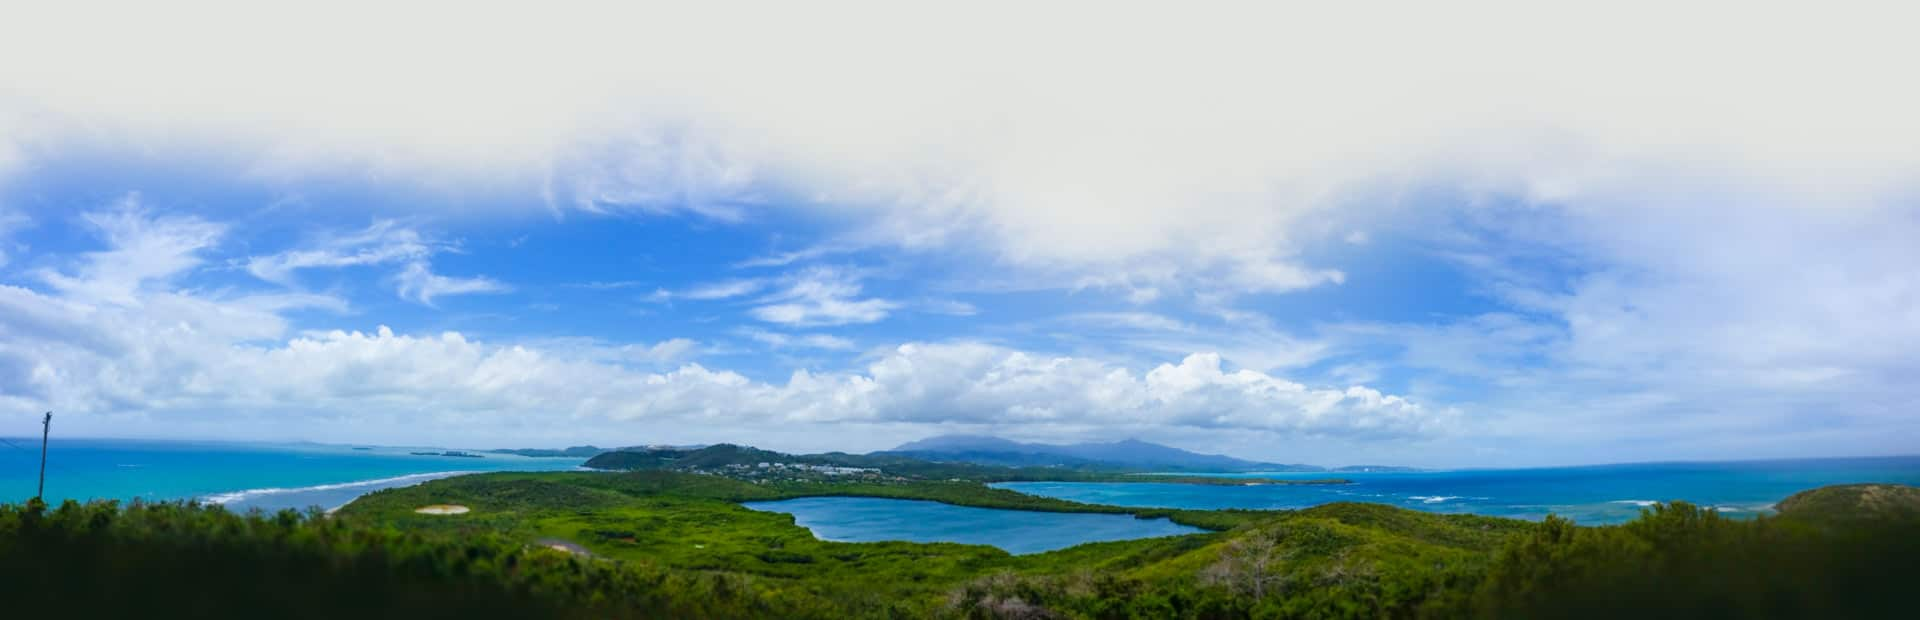 Panoramic view of Fajardo Bio Bay Bioluminescent Bay Puerto Rico